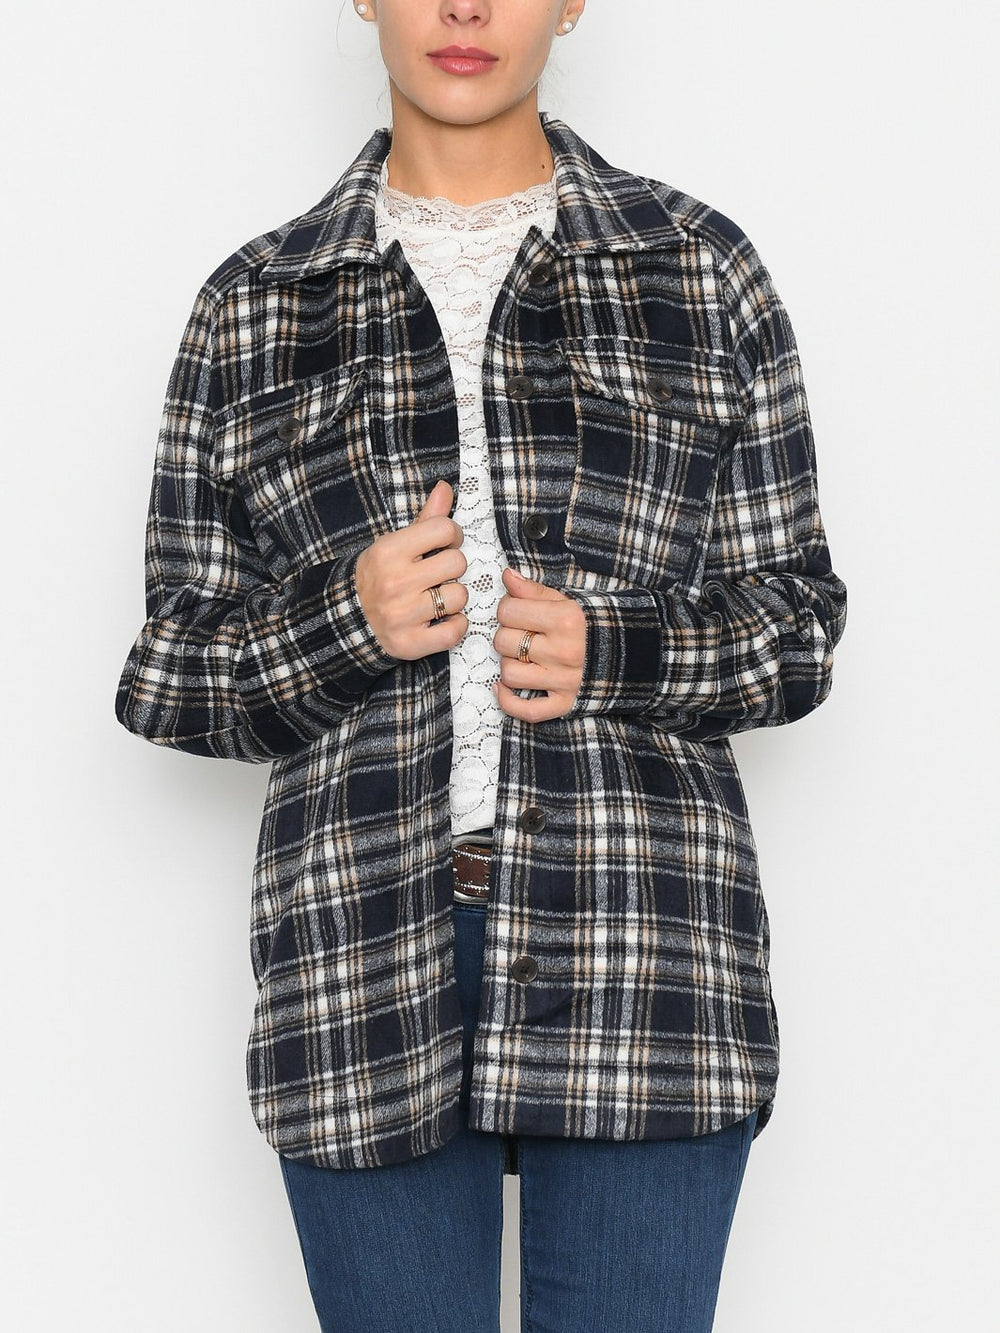 Kaffe KAella shirt jacket midnight / sand combi - Online-Mode